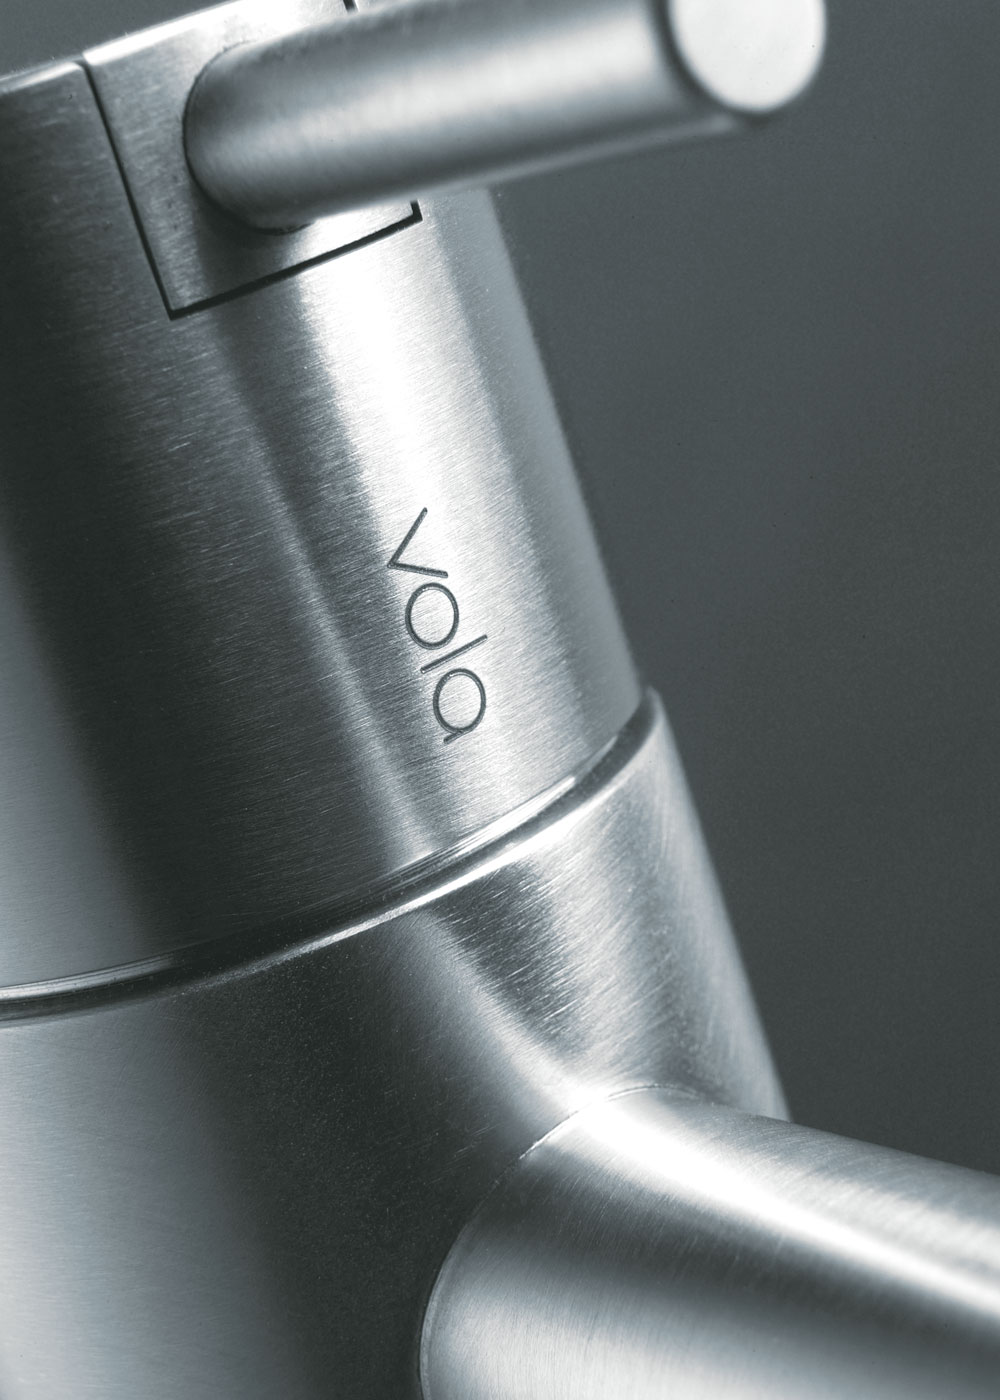 VOLA in stainless steel